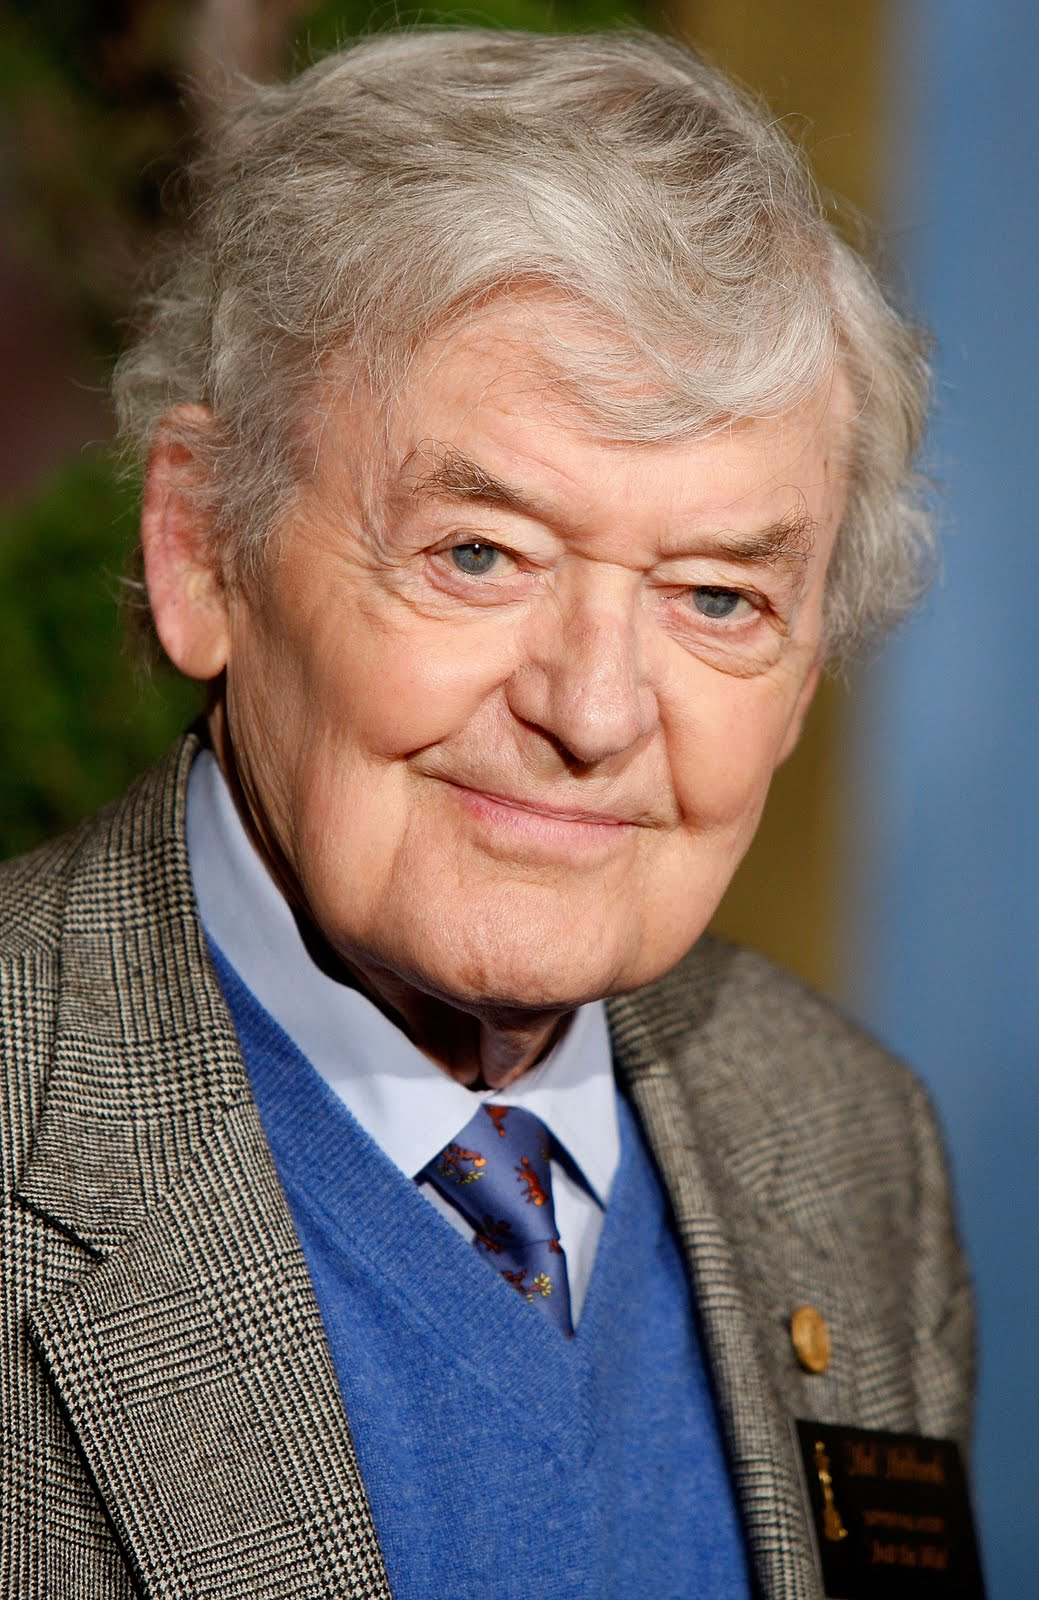 hal holbrook into the wildhal holbrook film, hal holbrook trailer, hal holbrook actor, hal holbrook, hal holbrook into the wild, hal holbrook young, hal holbrook biography, hal holbrook mark twain, hal holbrook imdb, hal holbrook sons of anarchy, hal holbrook dixie carter, hal holbrook net worth, hal holbrook mark twain tour, hal holbrook died, hal holbrook movies list, hal holbrook mark twain review, hal holbrook portland, hal holbrook perry mason, hal holbrook mark twain portland, hal holbrook tv shows